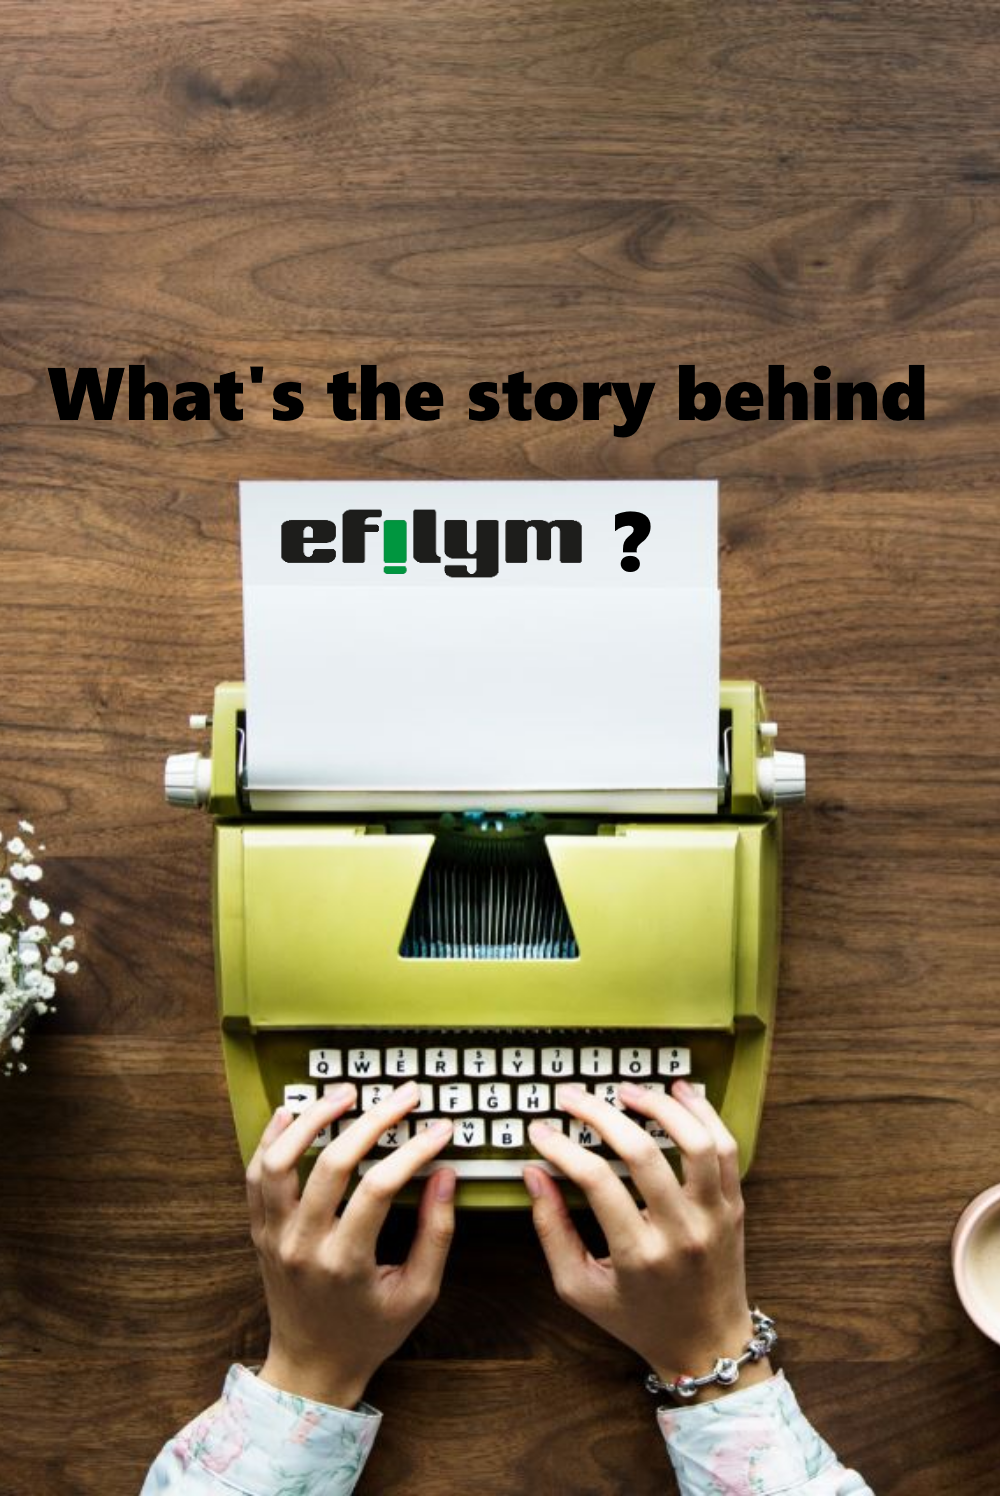 Who is the creator of EFILYM and why did they create the financial simulator application for people contemplating a lifestyle change?